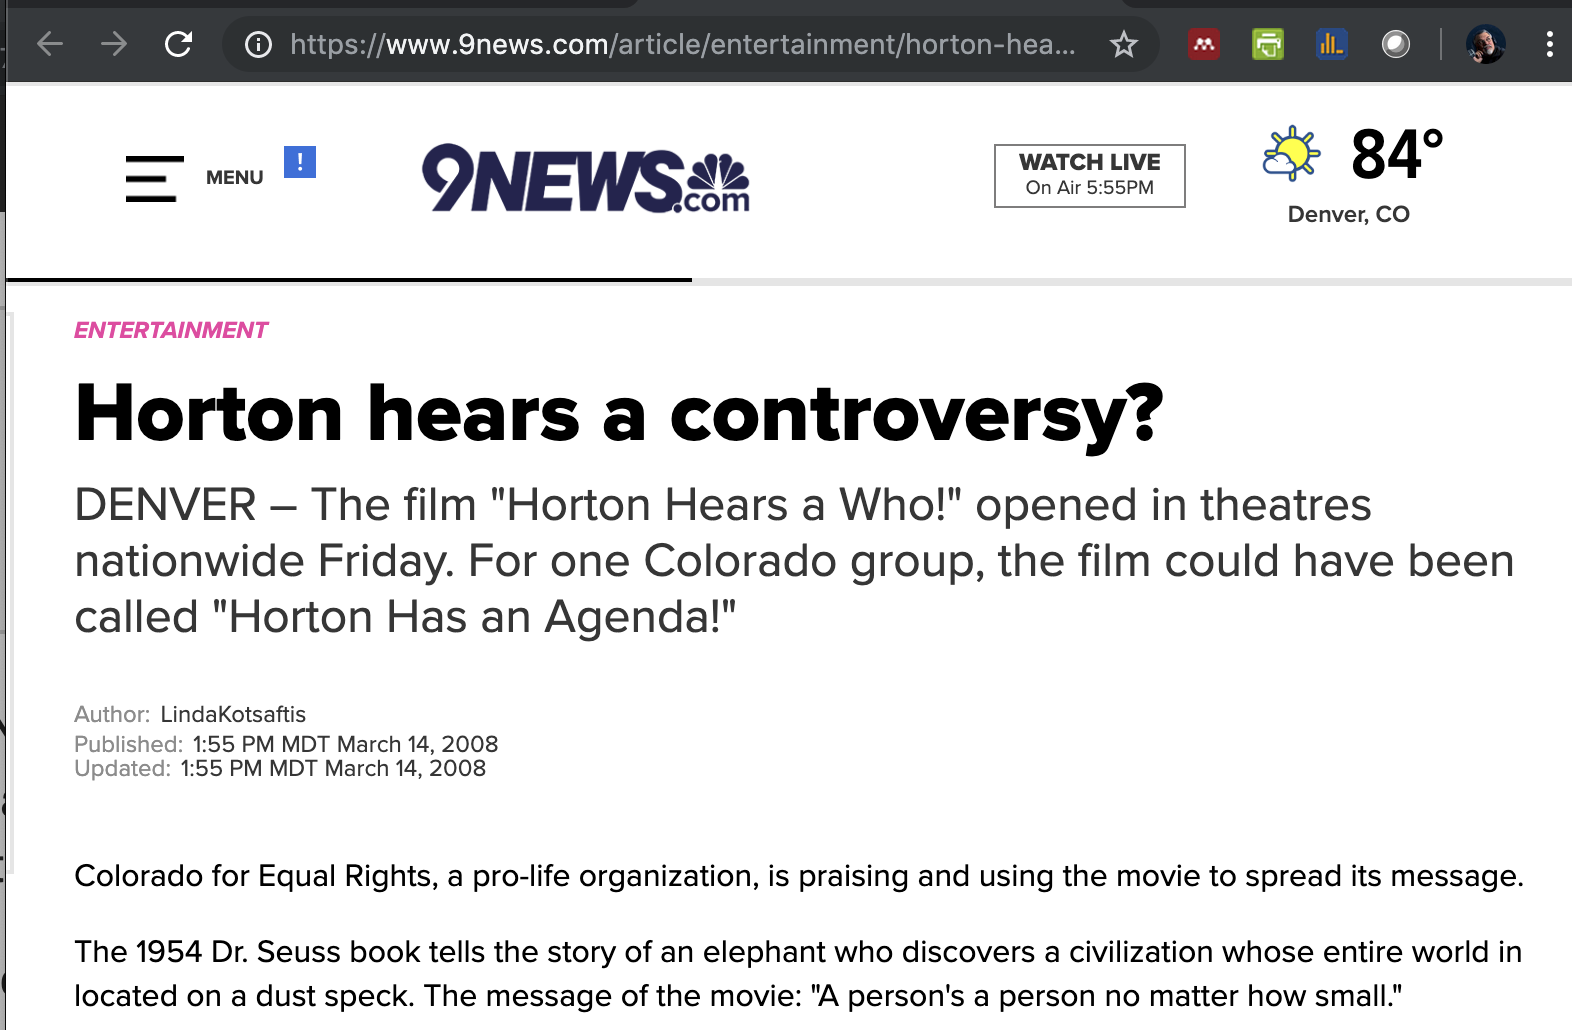 Denver's NBC affilate 9News reports on the personhood event at the Horton Hears a Who premier...